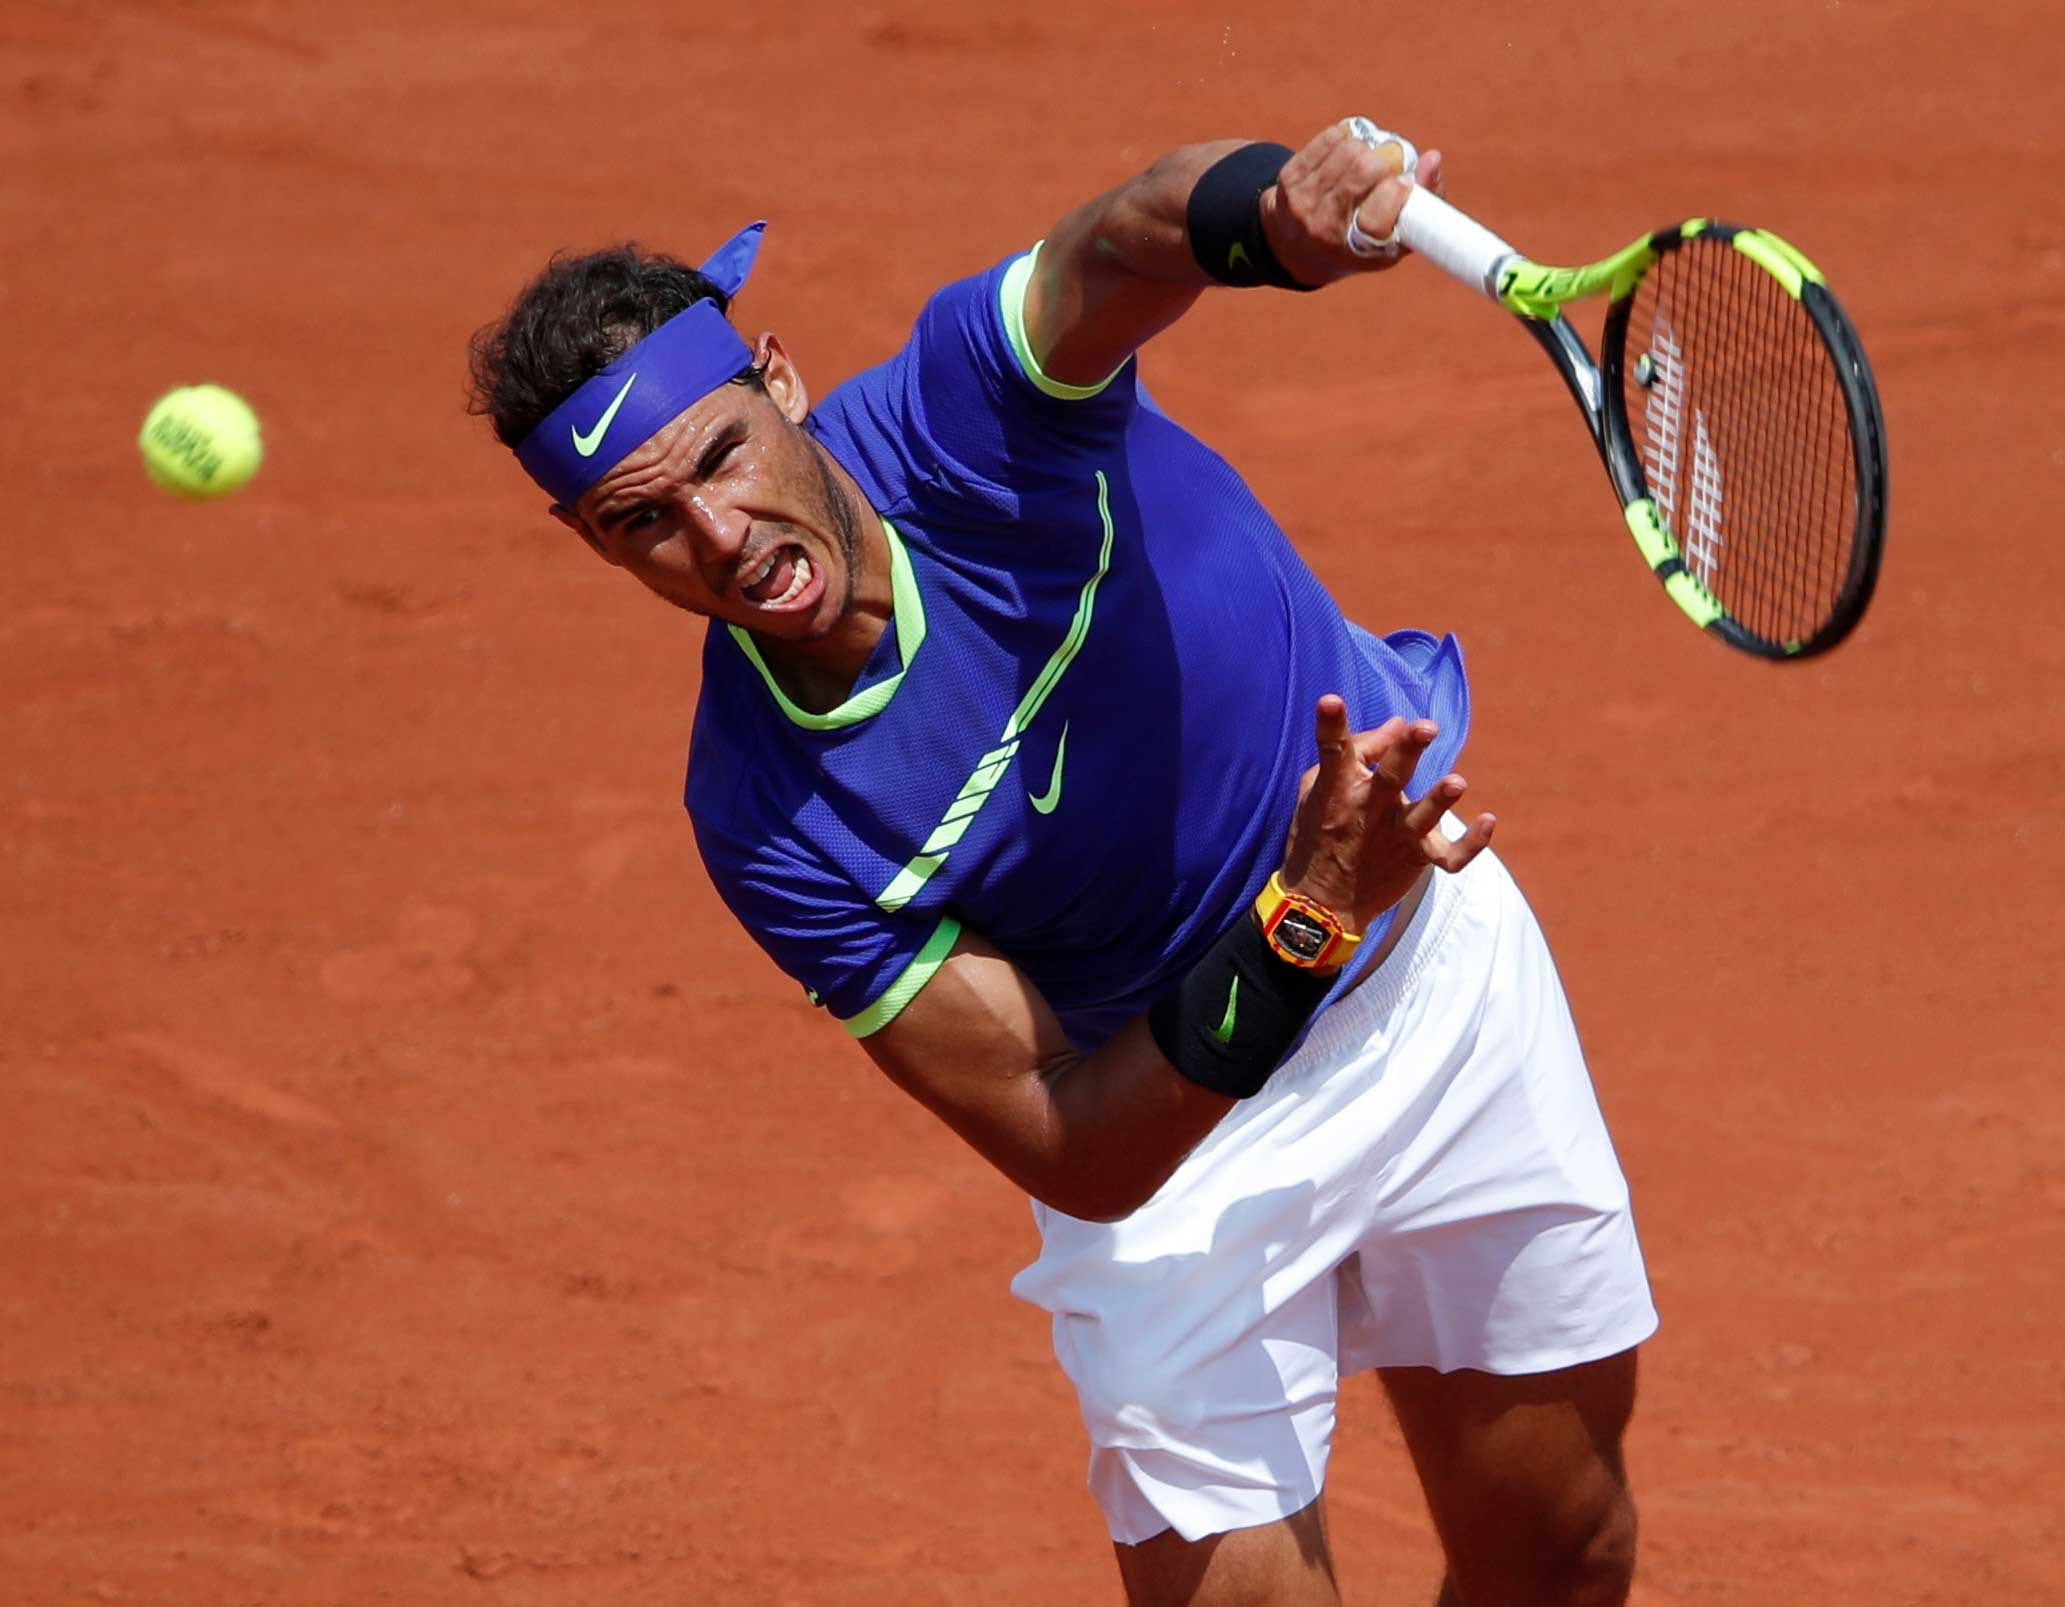 Nadal demolishes Nikoloz